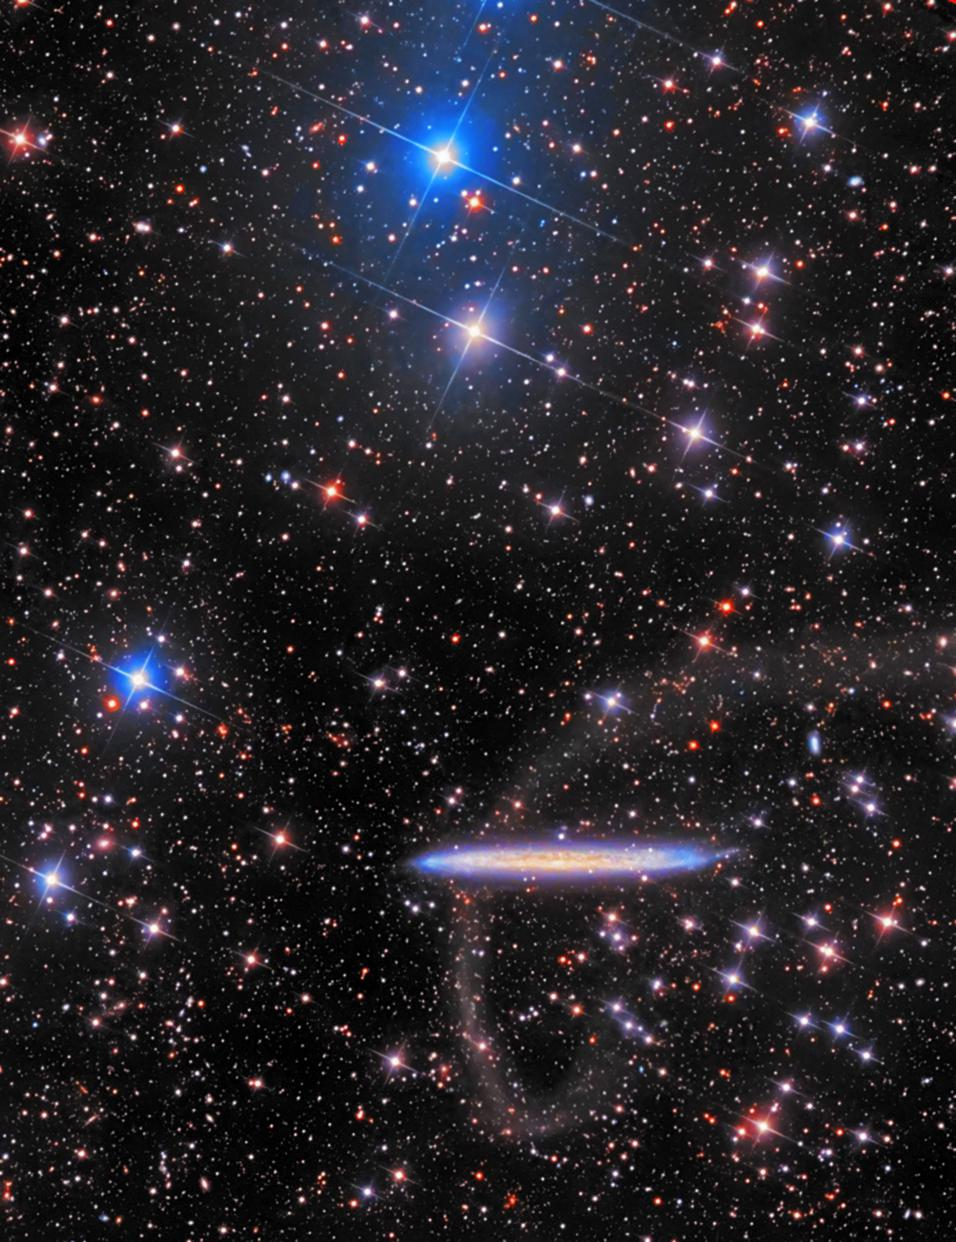 *NGC 5907 with a extremely faint tidal stream shot for more than 25+hrs